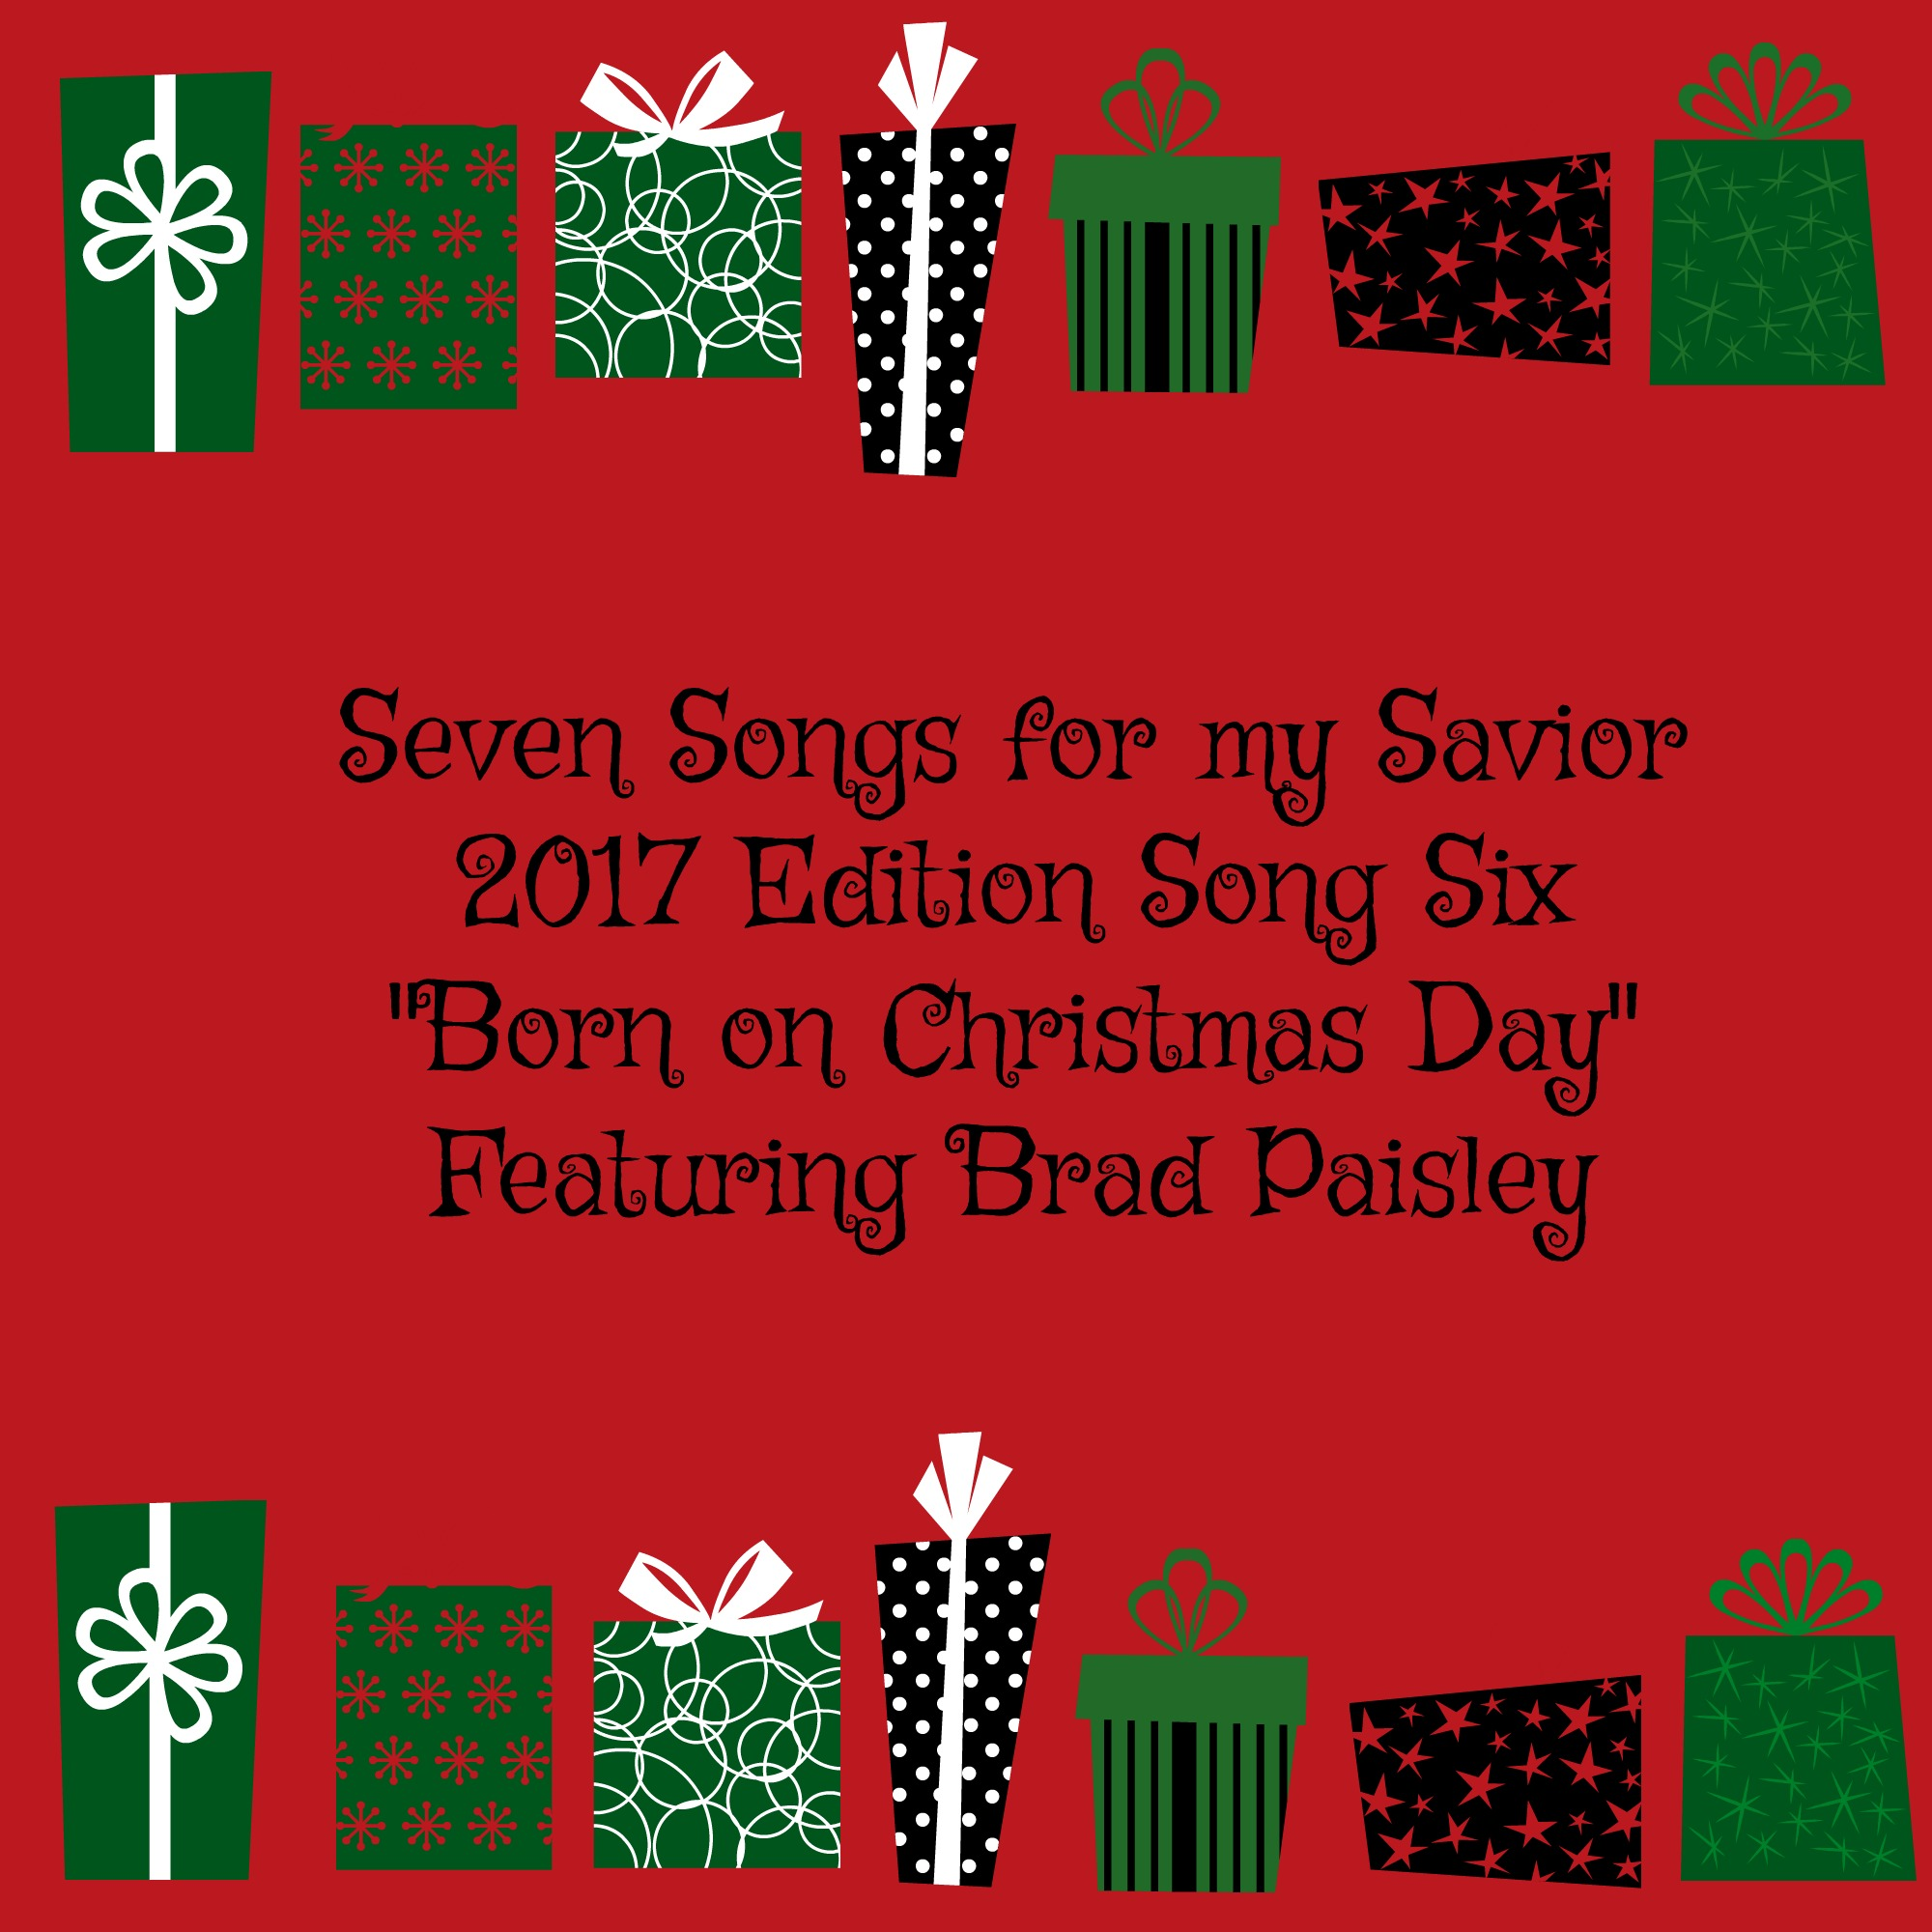 2017 song six seven songs for my savior born on christmas day - Christmas Country Songs